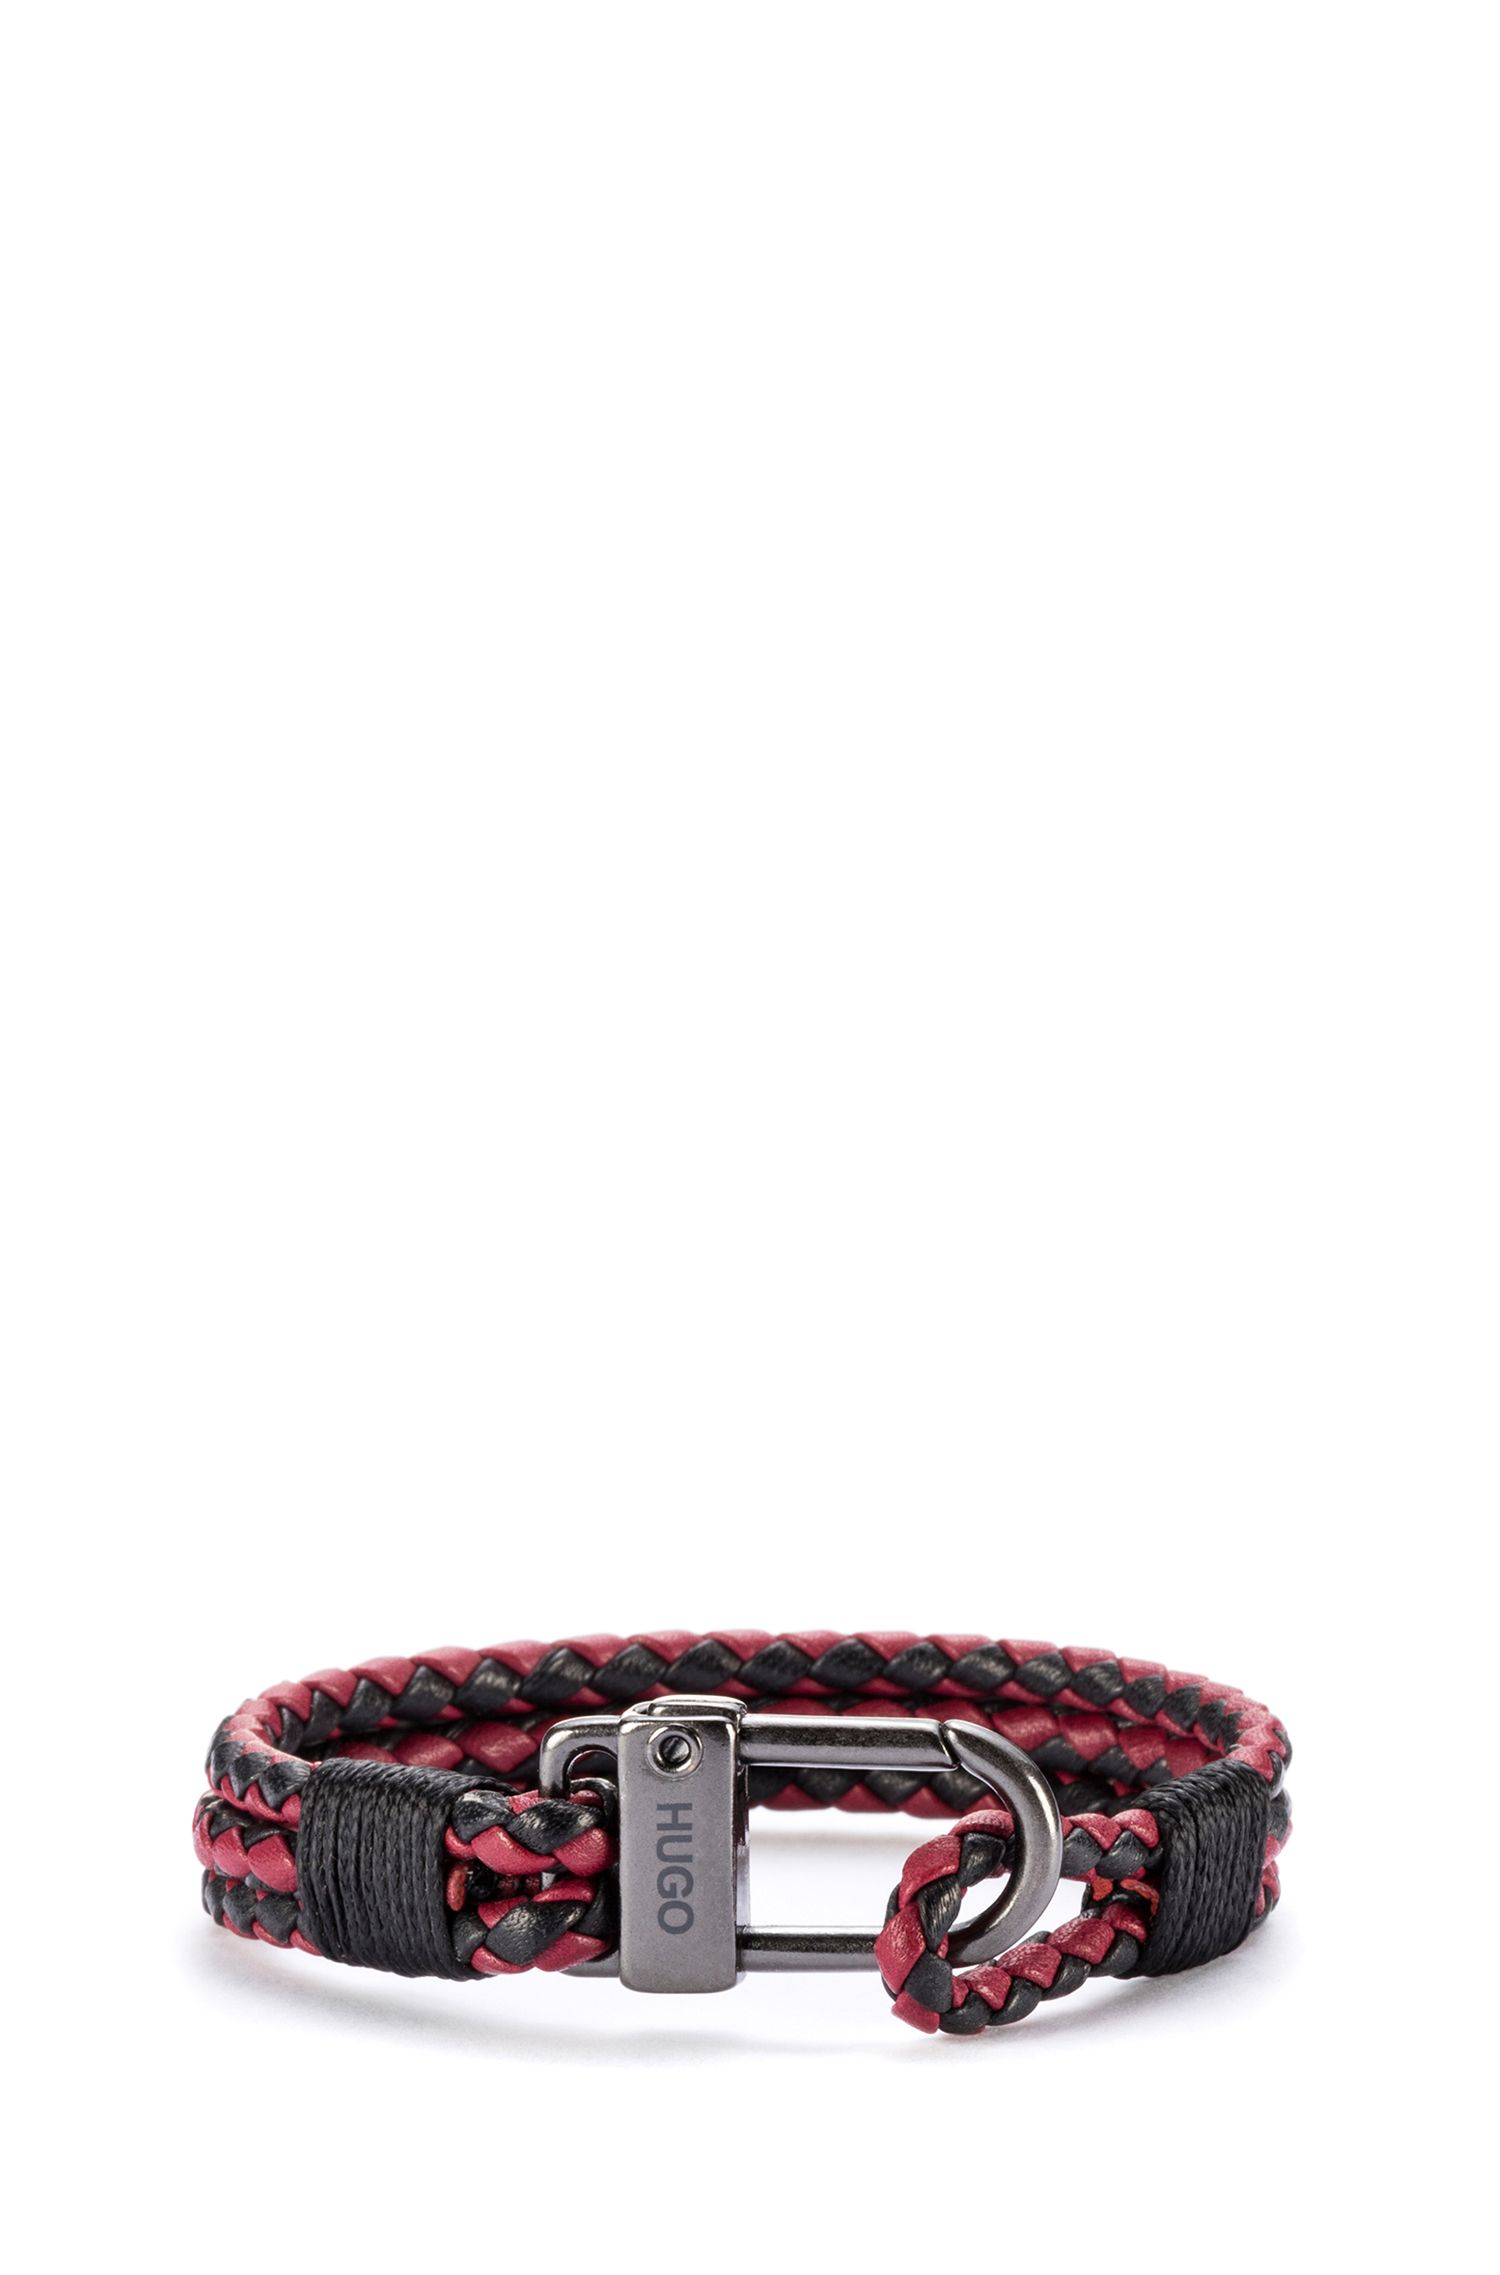 Braided Leather Bracelet | E-Hook, Patterned